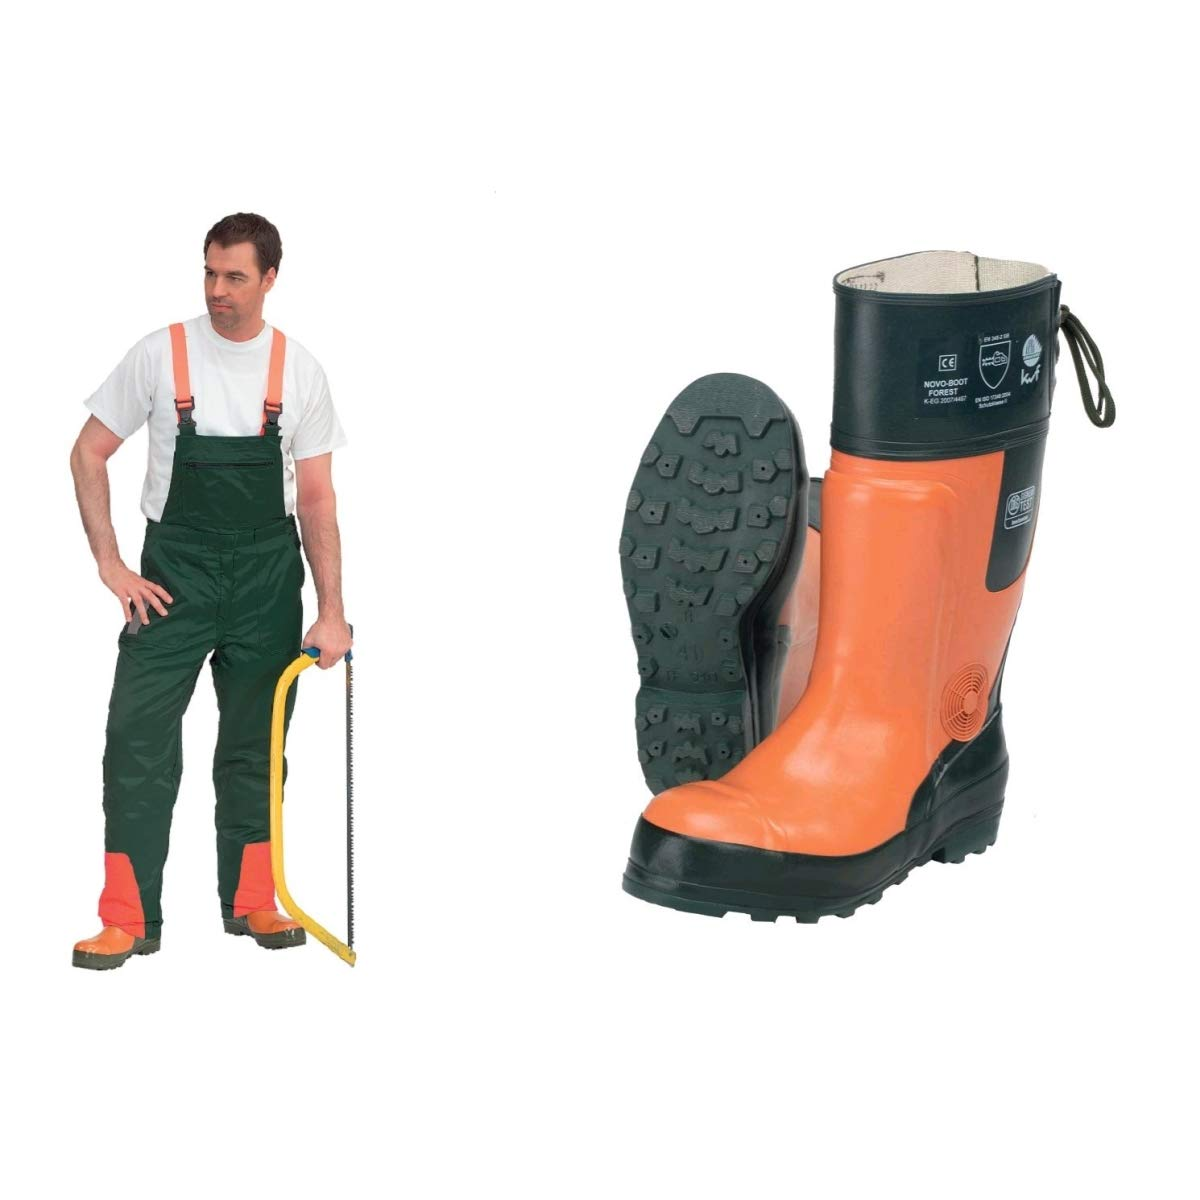 Gr/ün orange 2-piece cut protection set comprising KWF-tested forestry helmet and cut protection dungarees 1 26